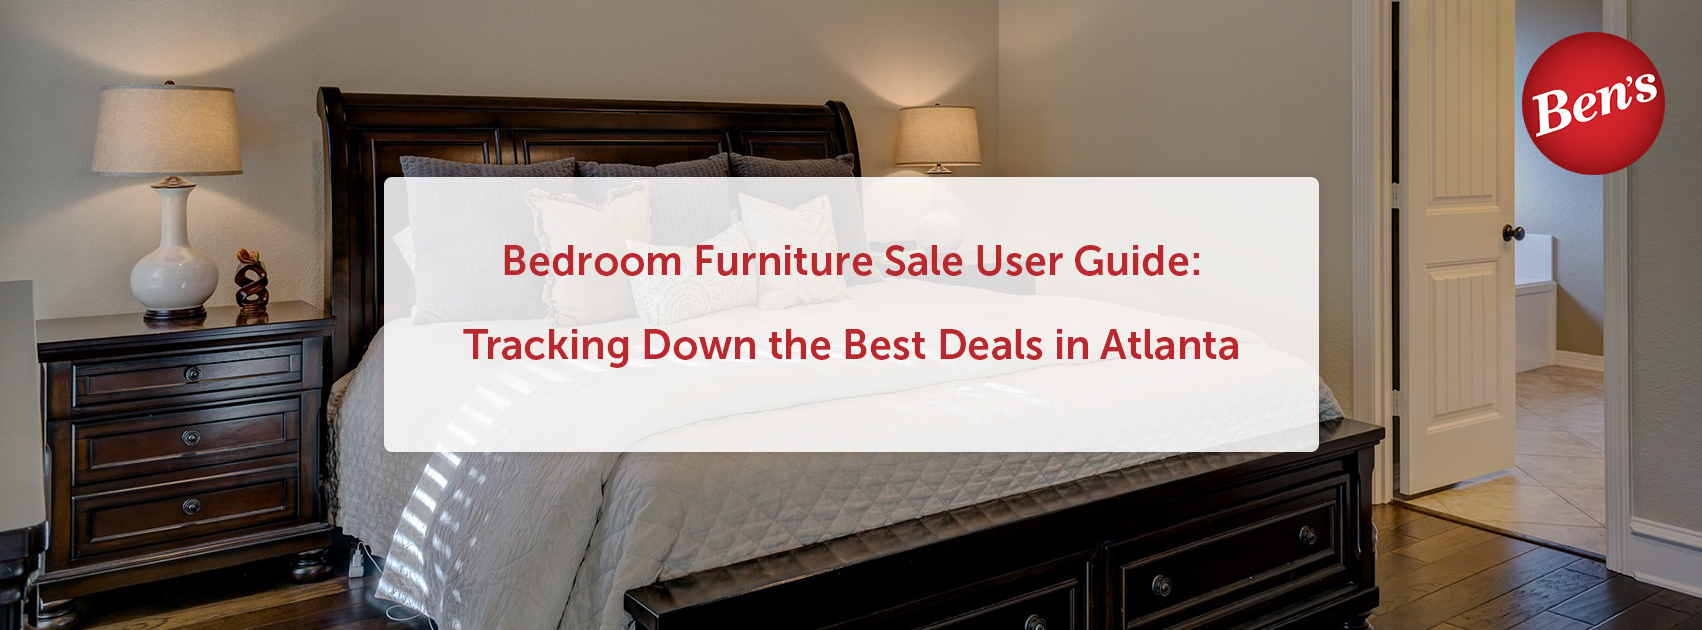 Bedroom Furniture Sale User Guide- Tracking Down the Best Deals in Atlanta